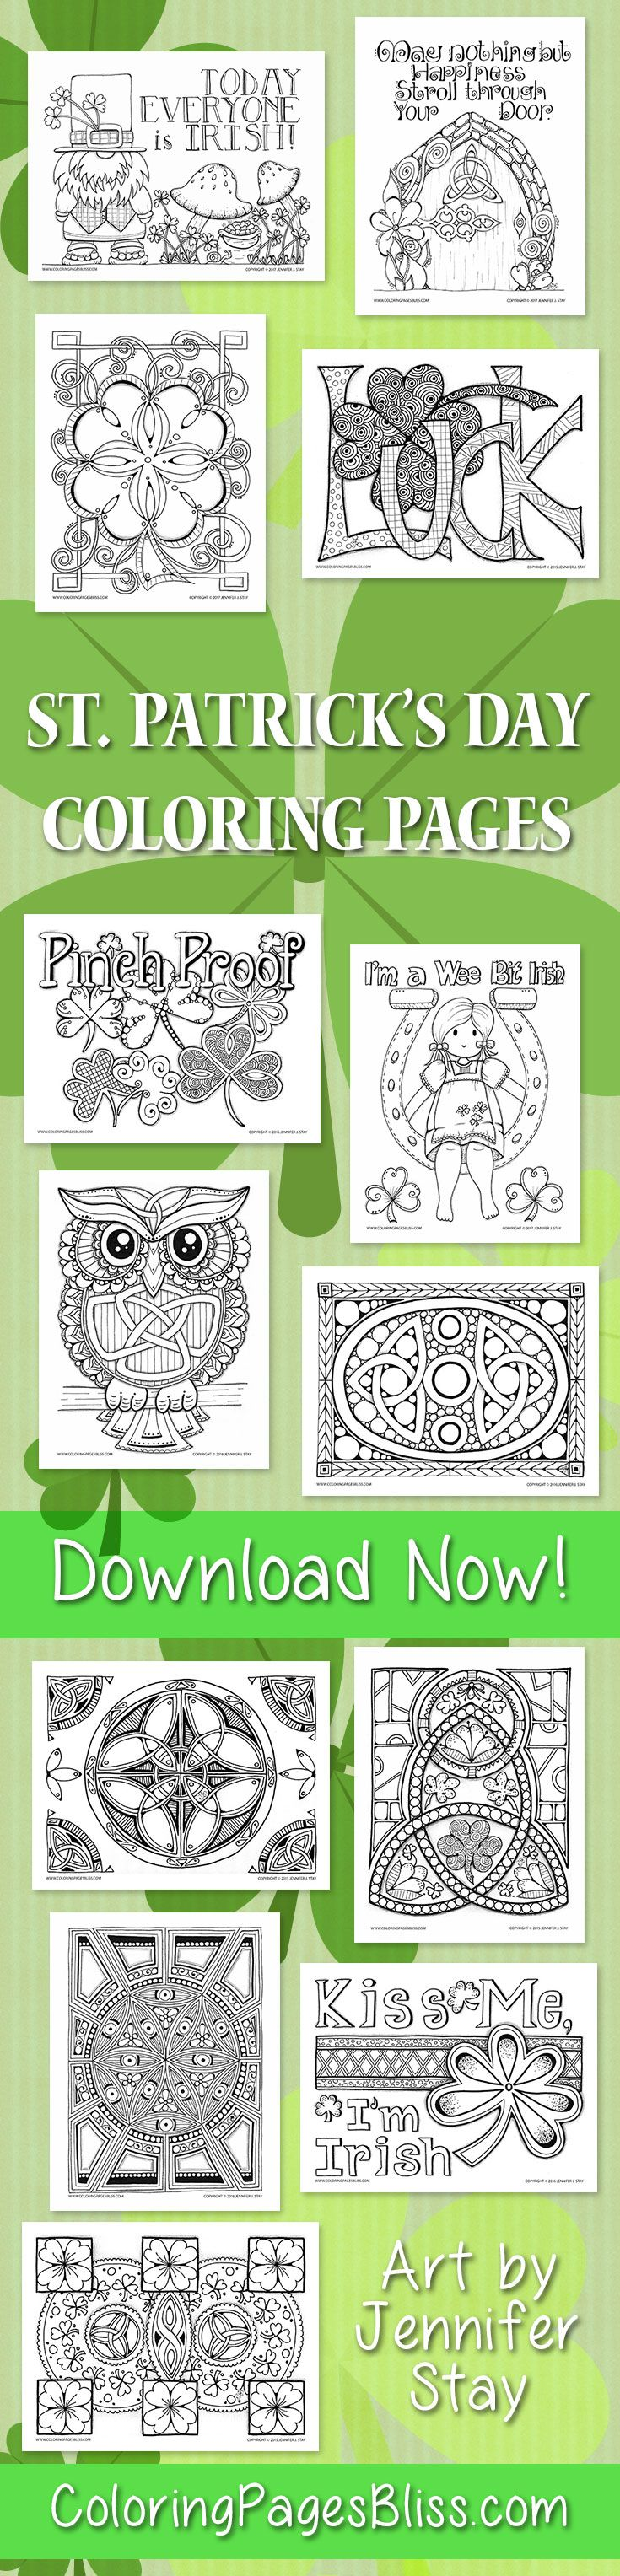 556 best Adult Coloring Pages images on Pinterest | Adult coloring ...